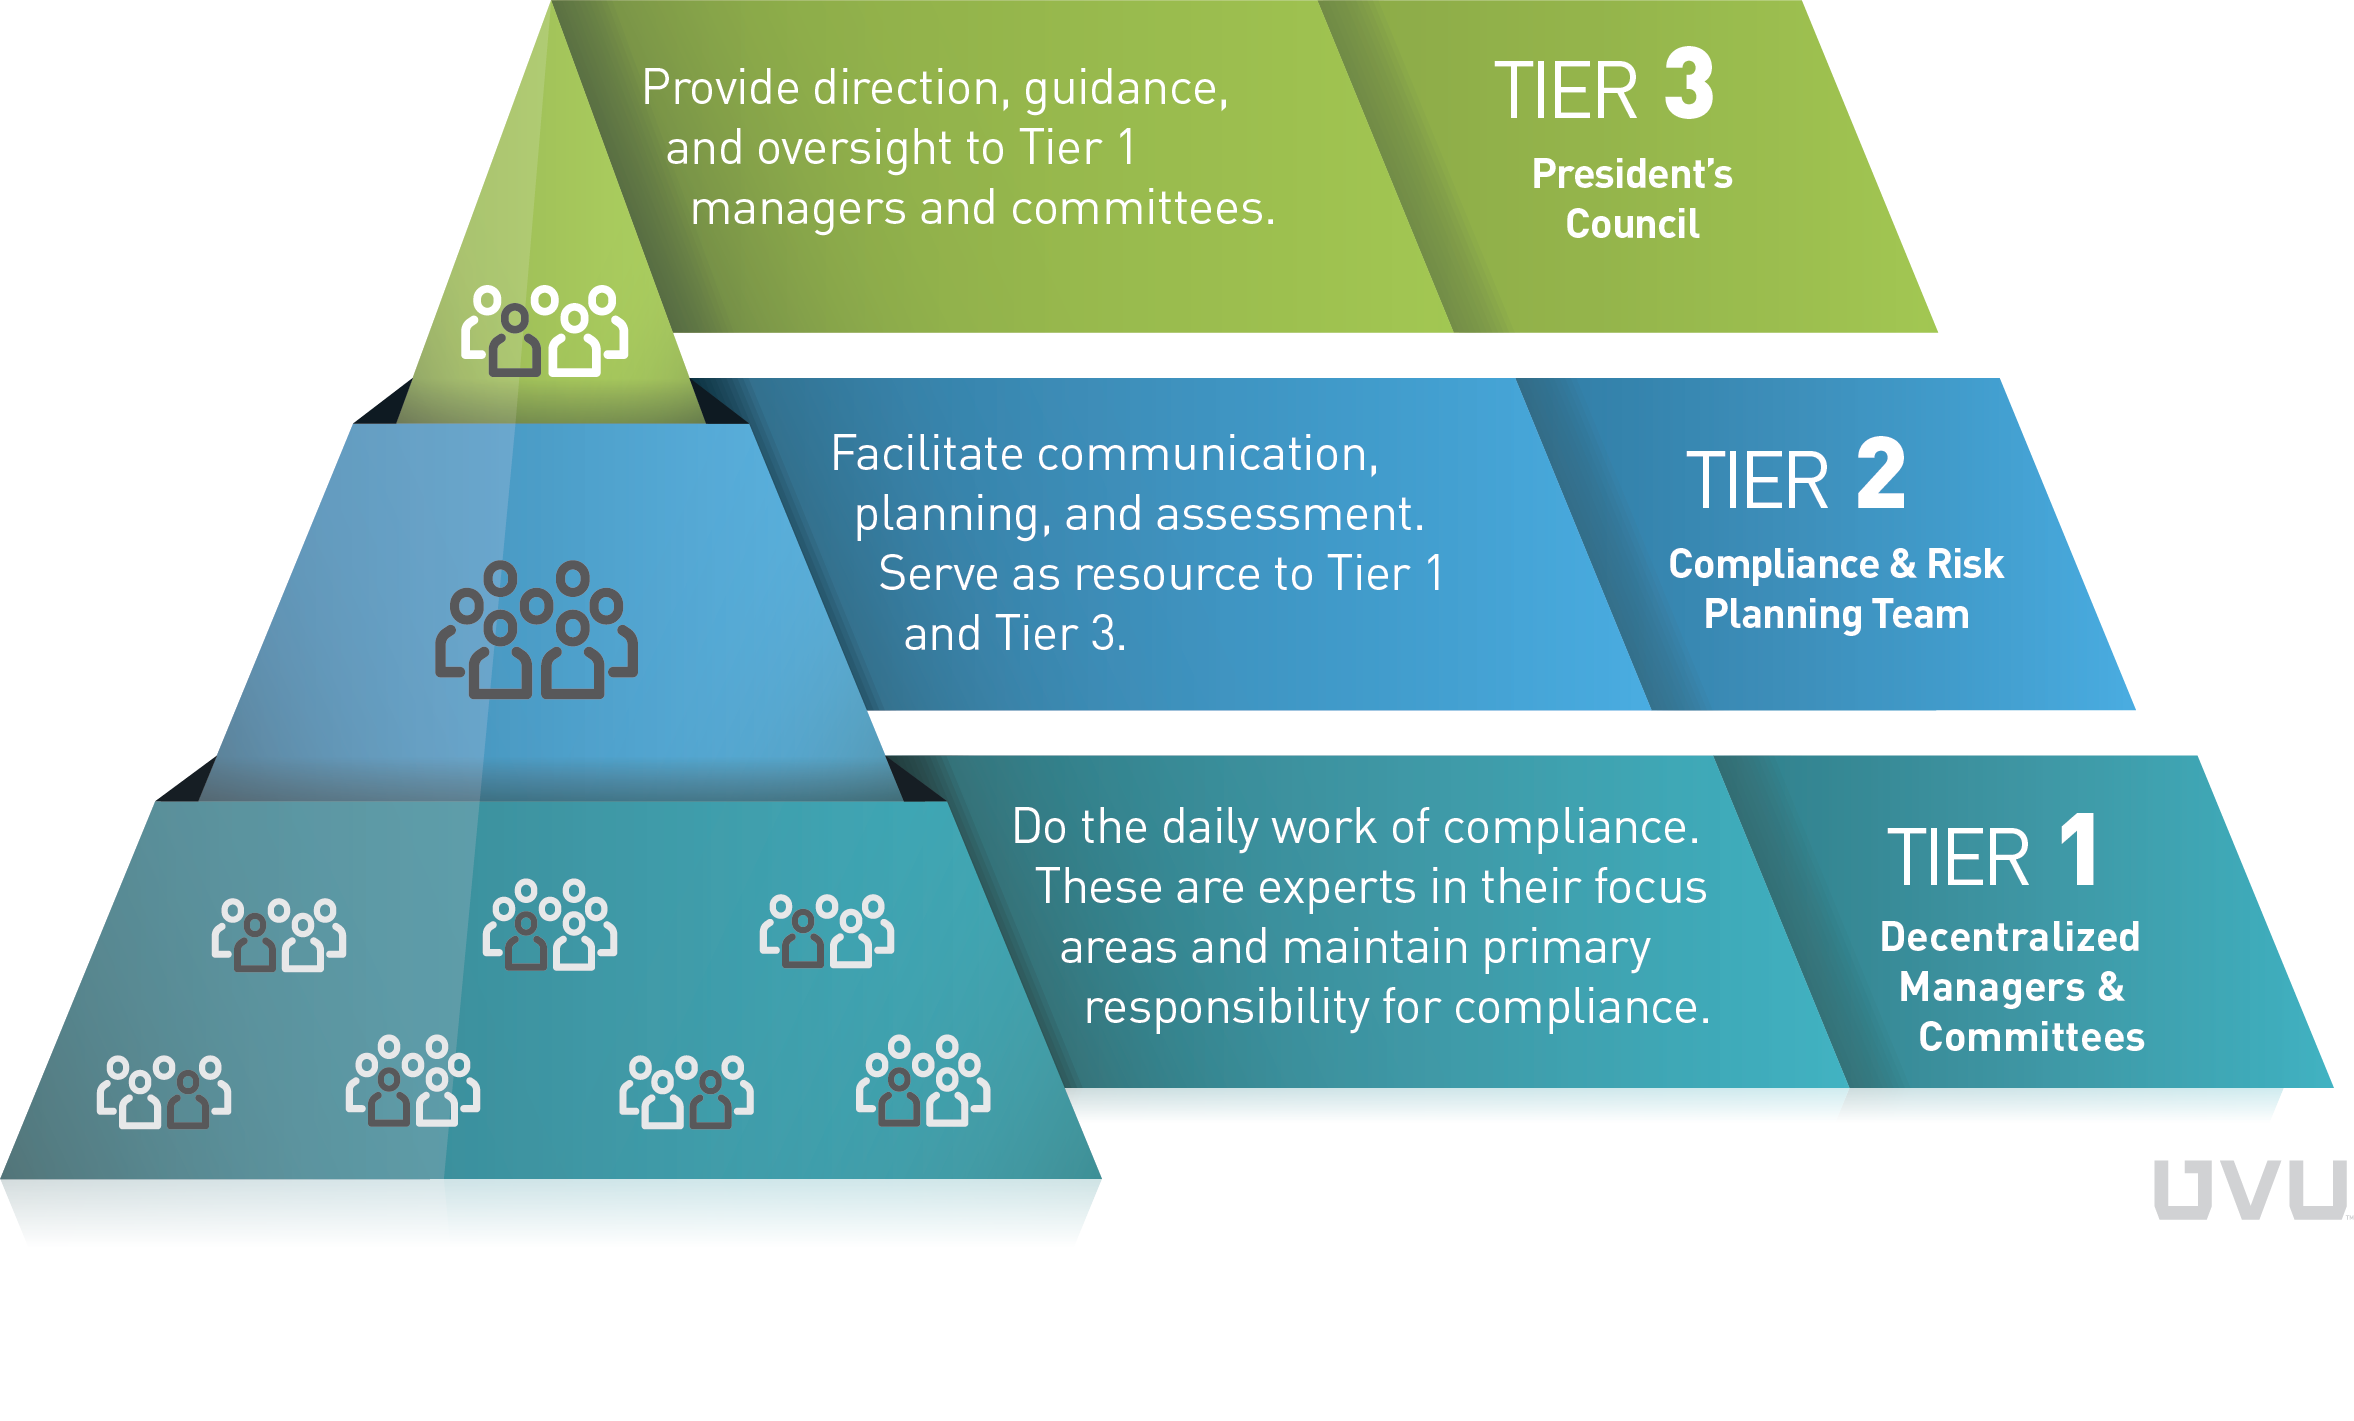 UVU compliance three-tiered structure image